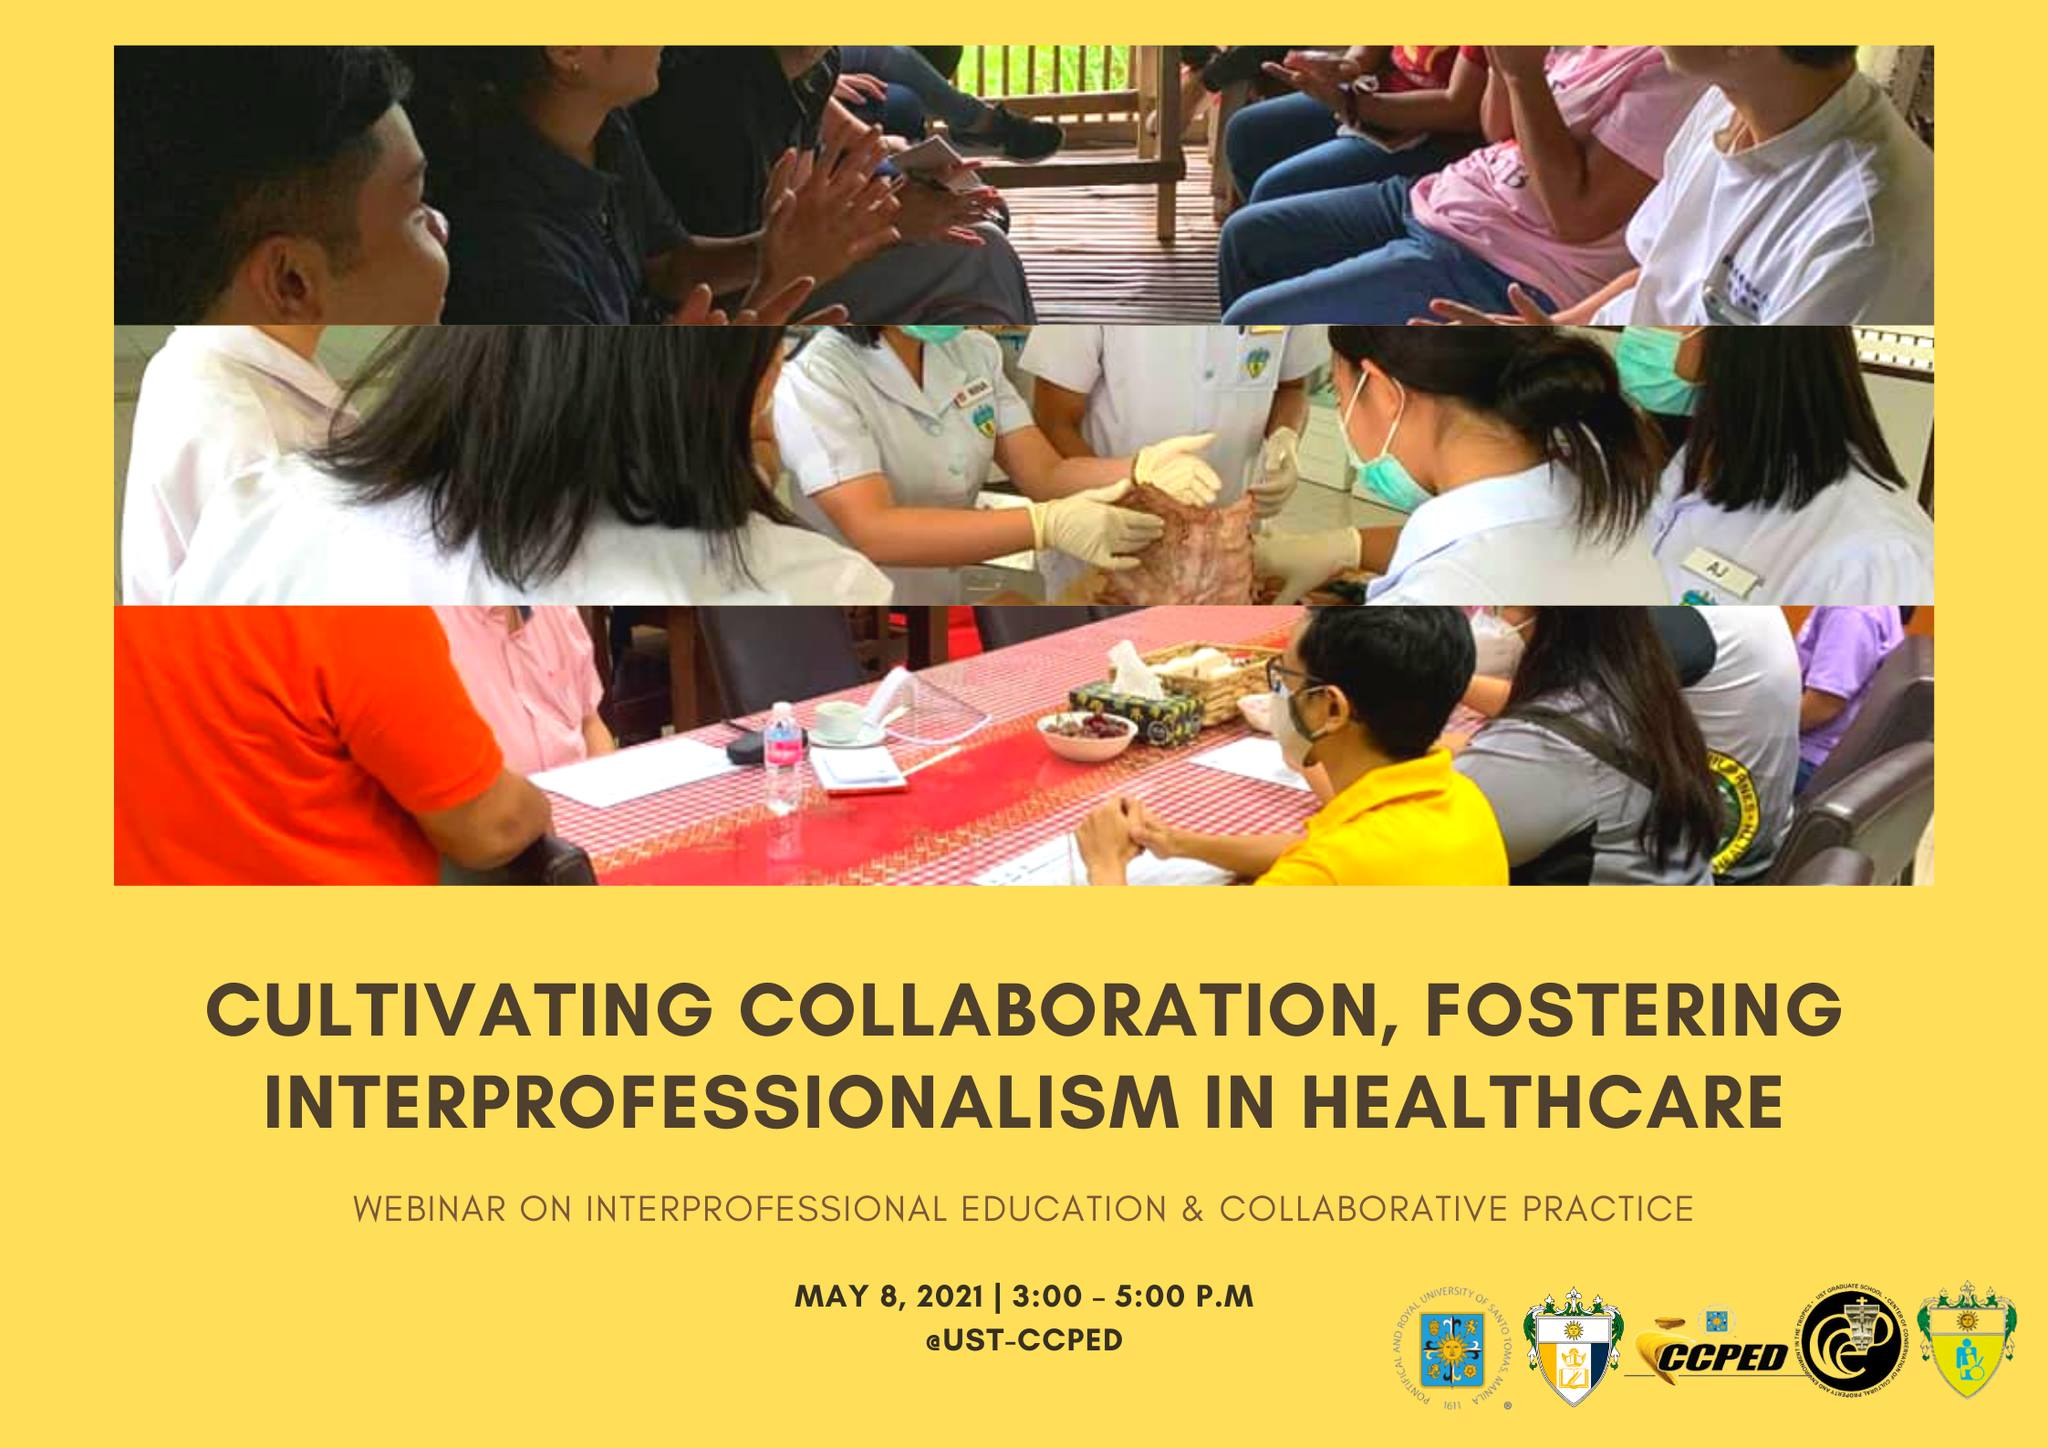 Cultivating Collaboration, Fostering Interprofessionalism in Healthcare: A Webinar on Interprofessional Education & Collaborative Practice